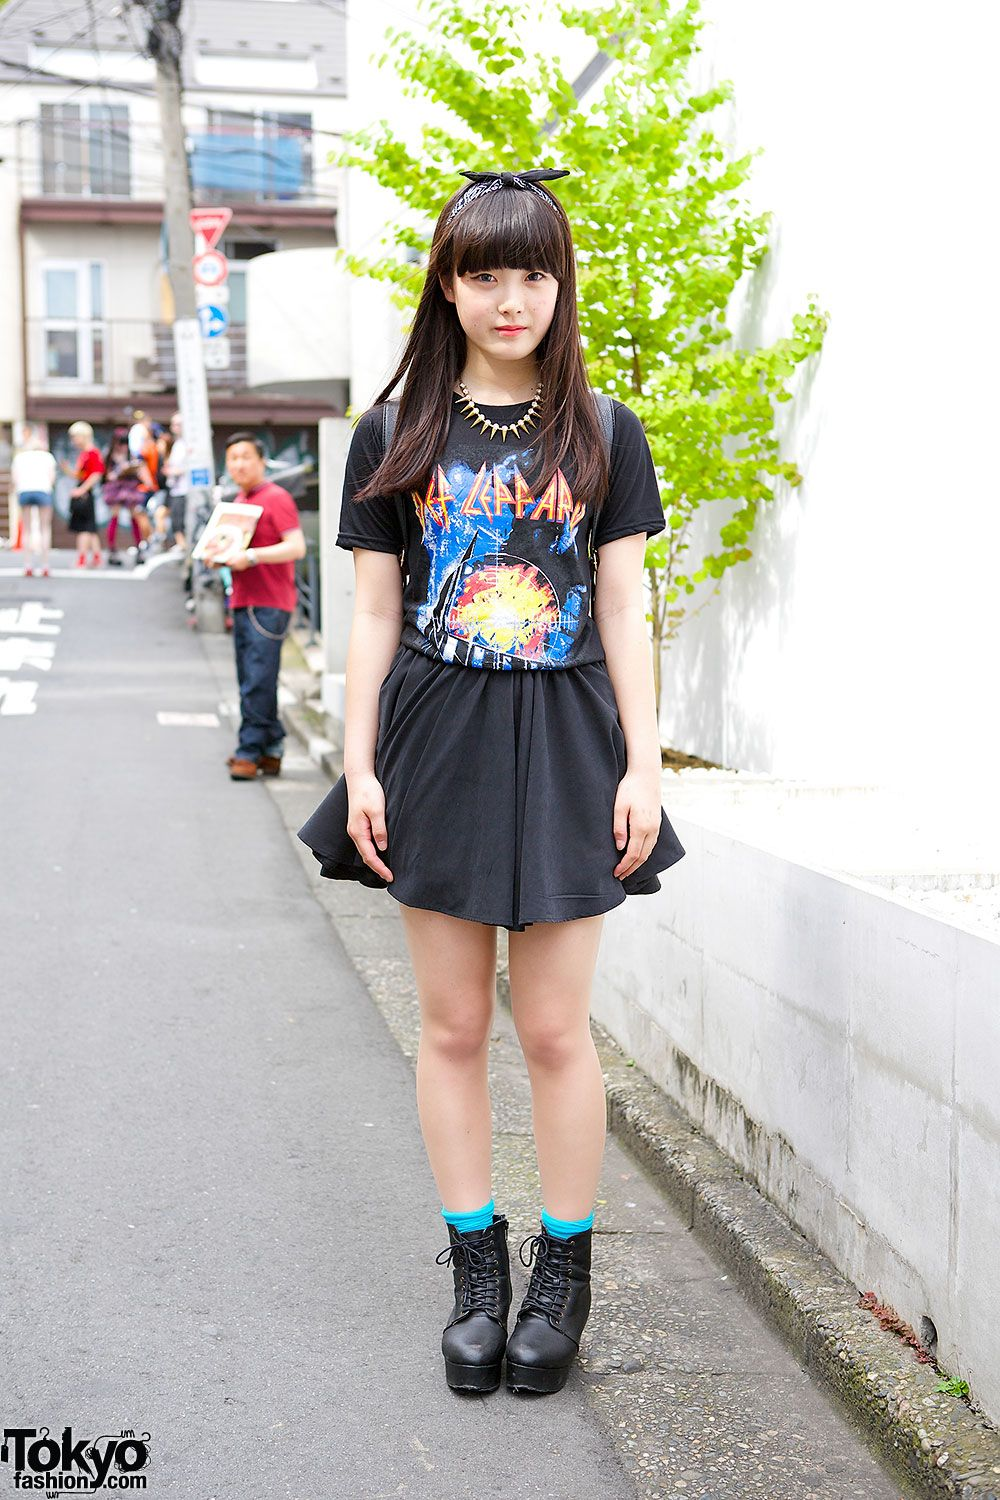 aa9a0ce95ec6 15-year-old Harajuku girl Momo in resale Def Leppard t-shirt